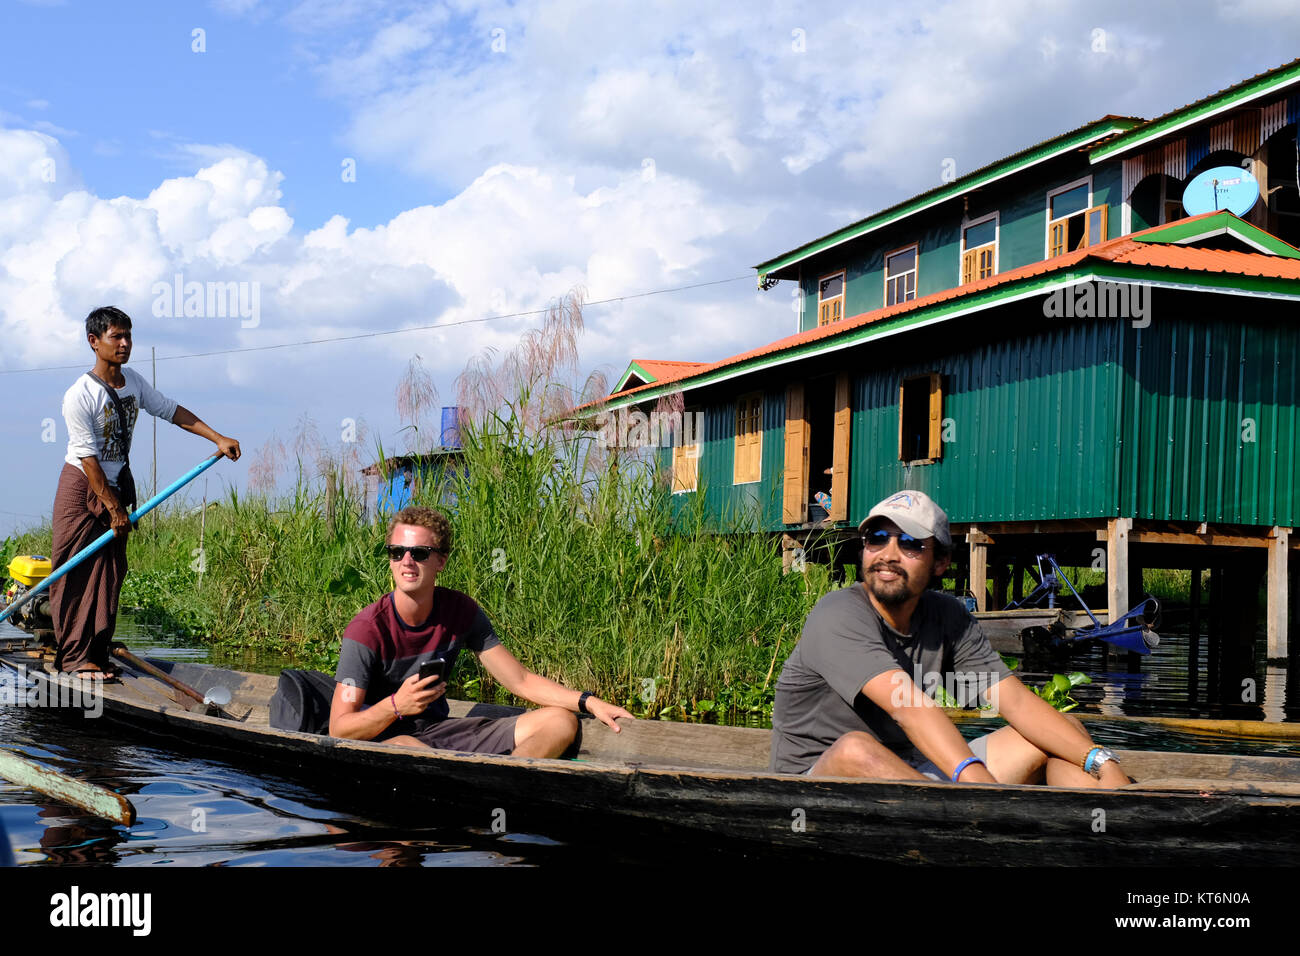 Tourists on longboat in floating village on Inle Lake, Myanmar - Stock Image